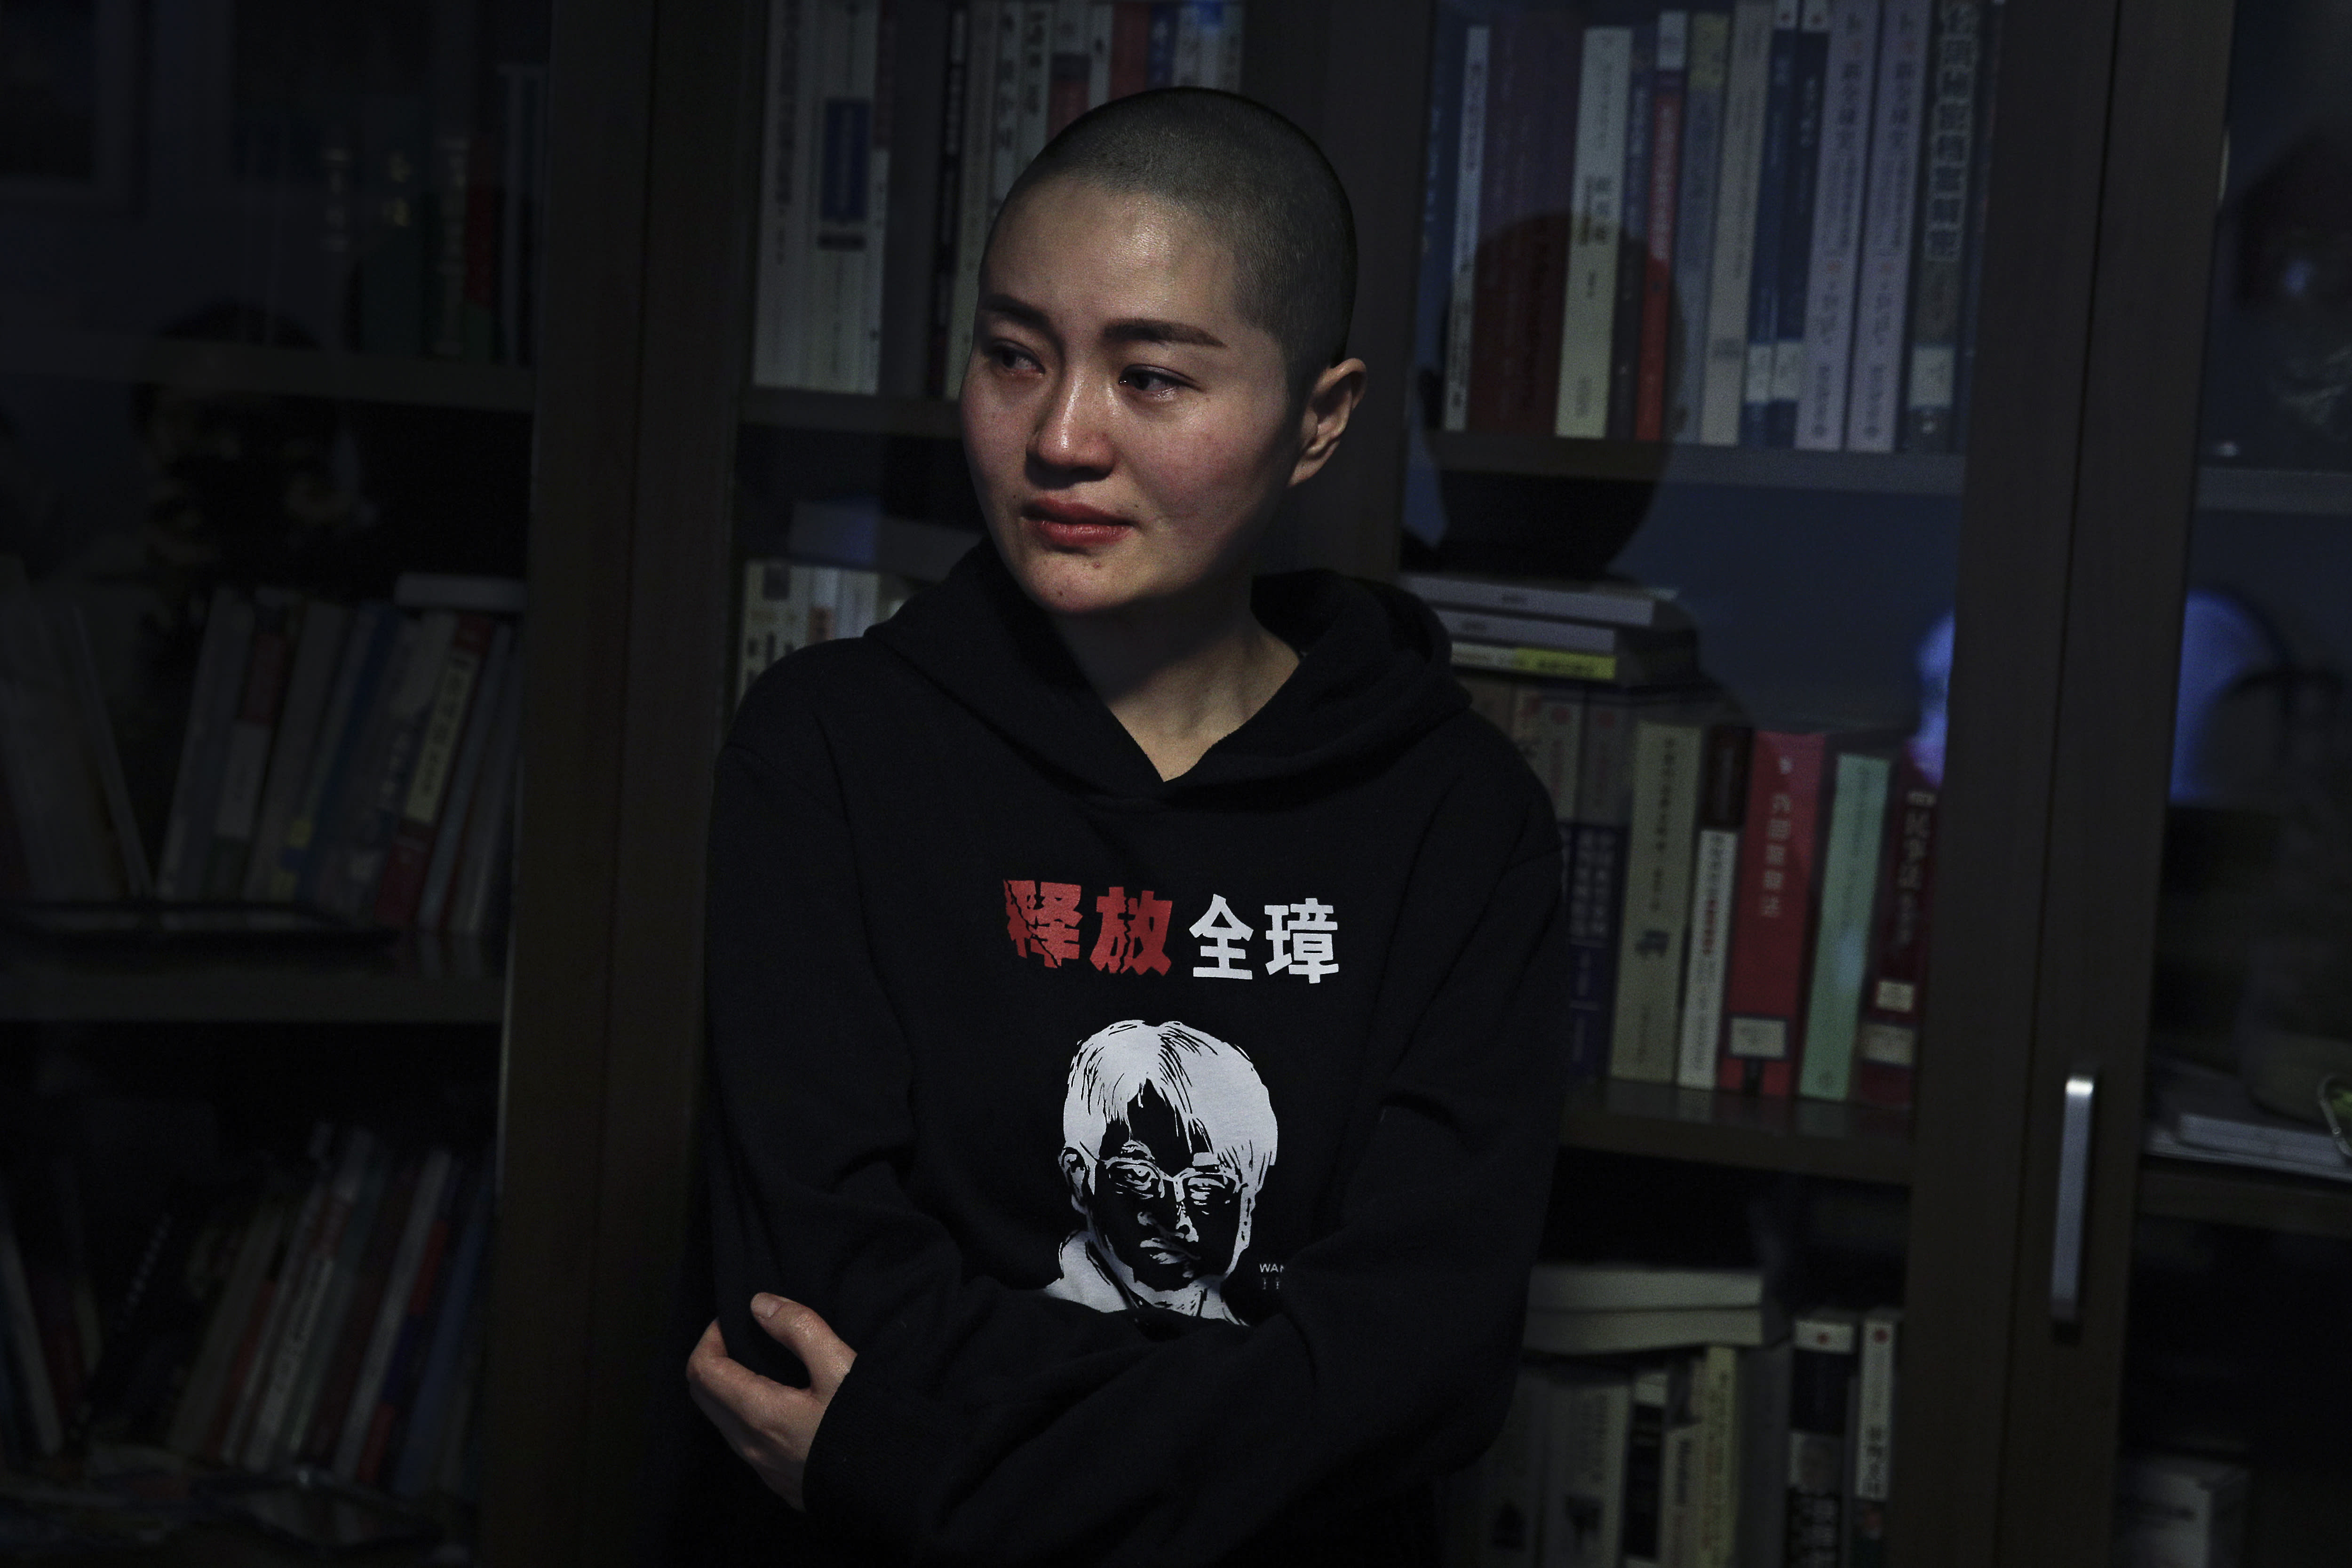 """Li Wenzu, wife of prominent Chinese human rights lawyer Wang Quanzhang wears a sweater with her husband's portrait printed with the words """"Release Quanzhang"""" after Wang's sentencing, at her house in Beijing, Monday, Jan. 28, 2019. Wang was sentenced to 4 and half years in prison on the charge of subversion of state power Monday, more than three years after he was detained in a wide-ranging crackdown on the legal profession. (AP Photo/Andy Wong)"""